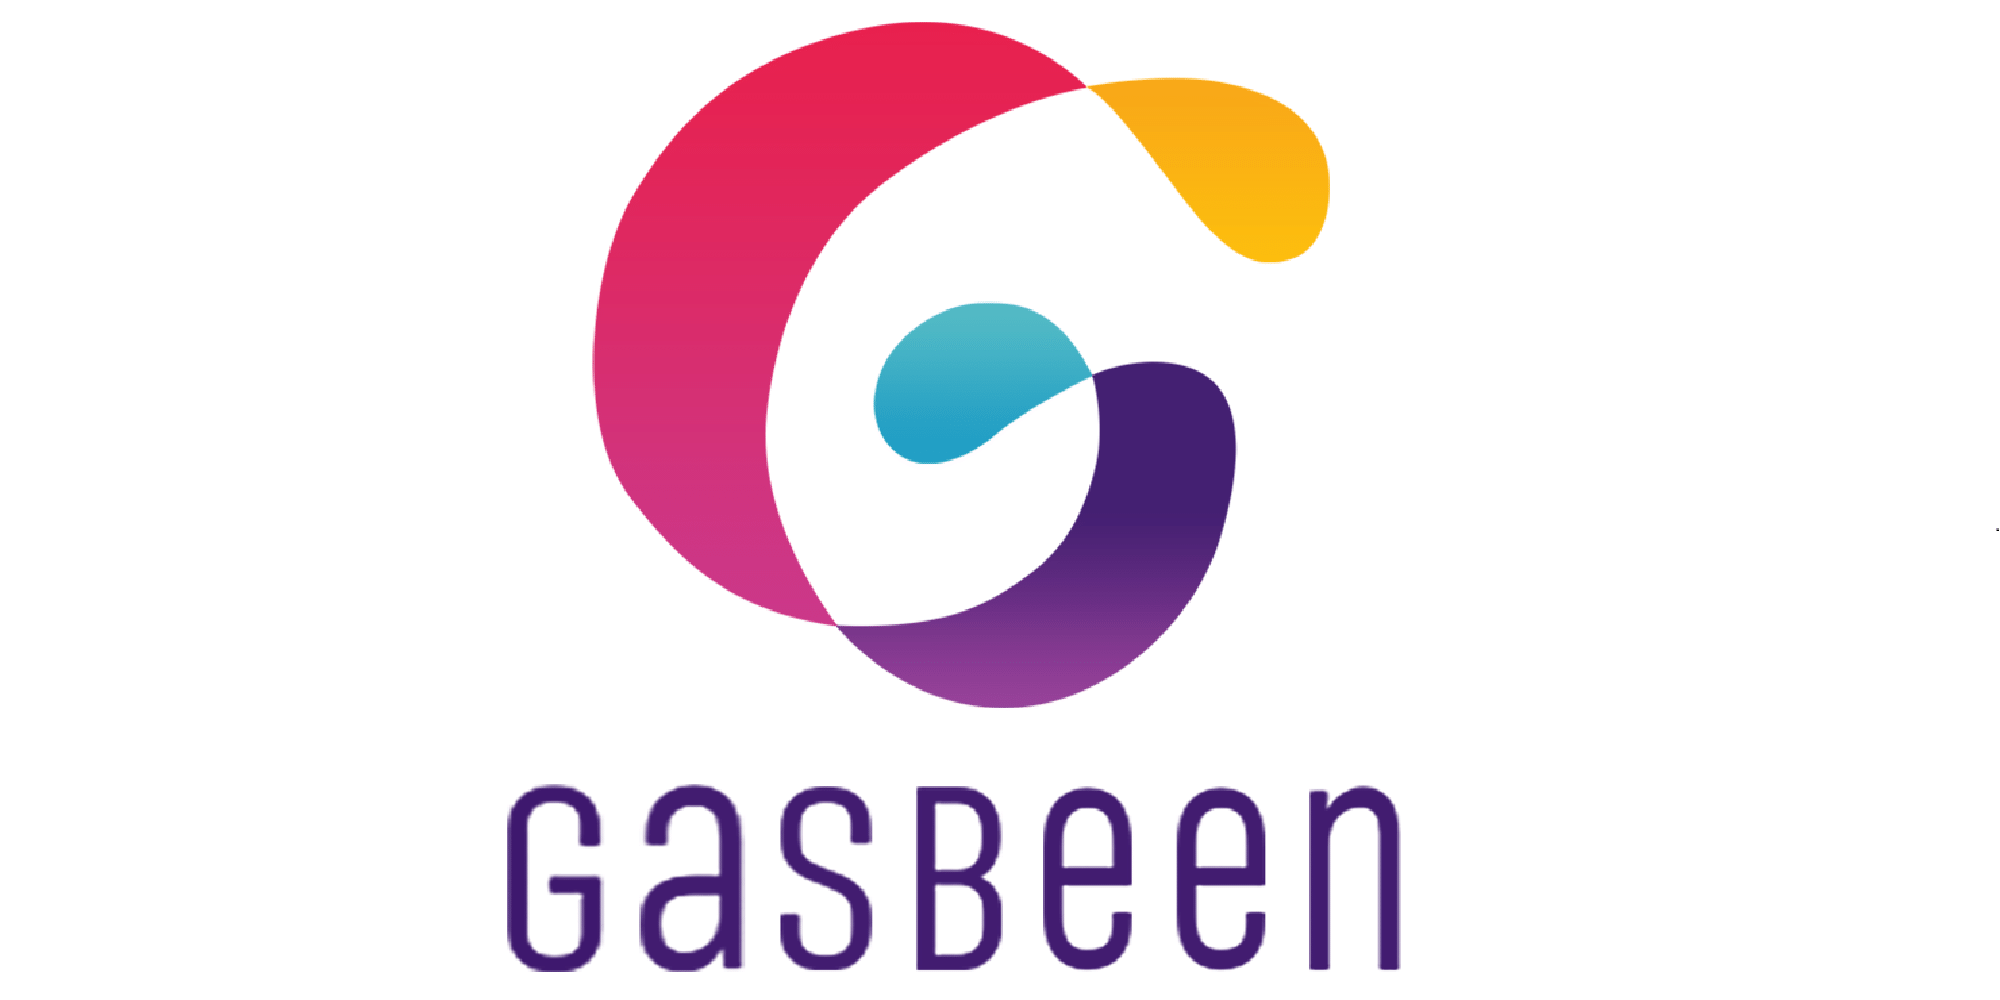 Gasbeen - Always in style